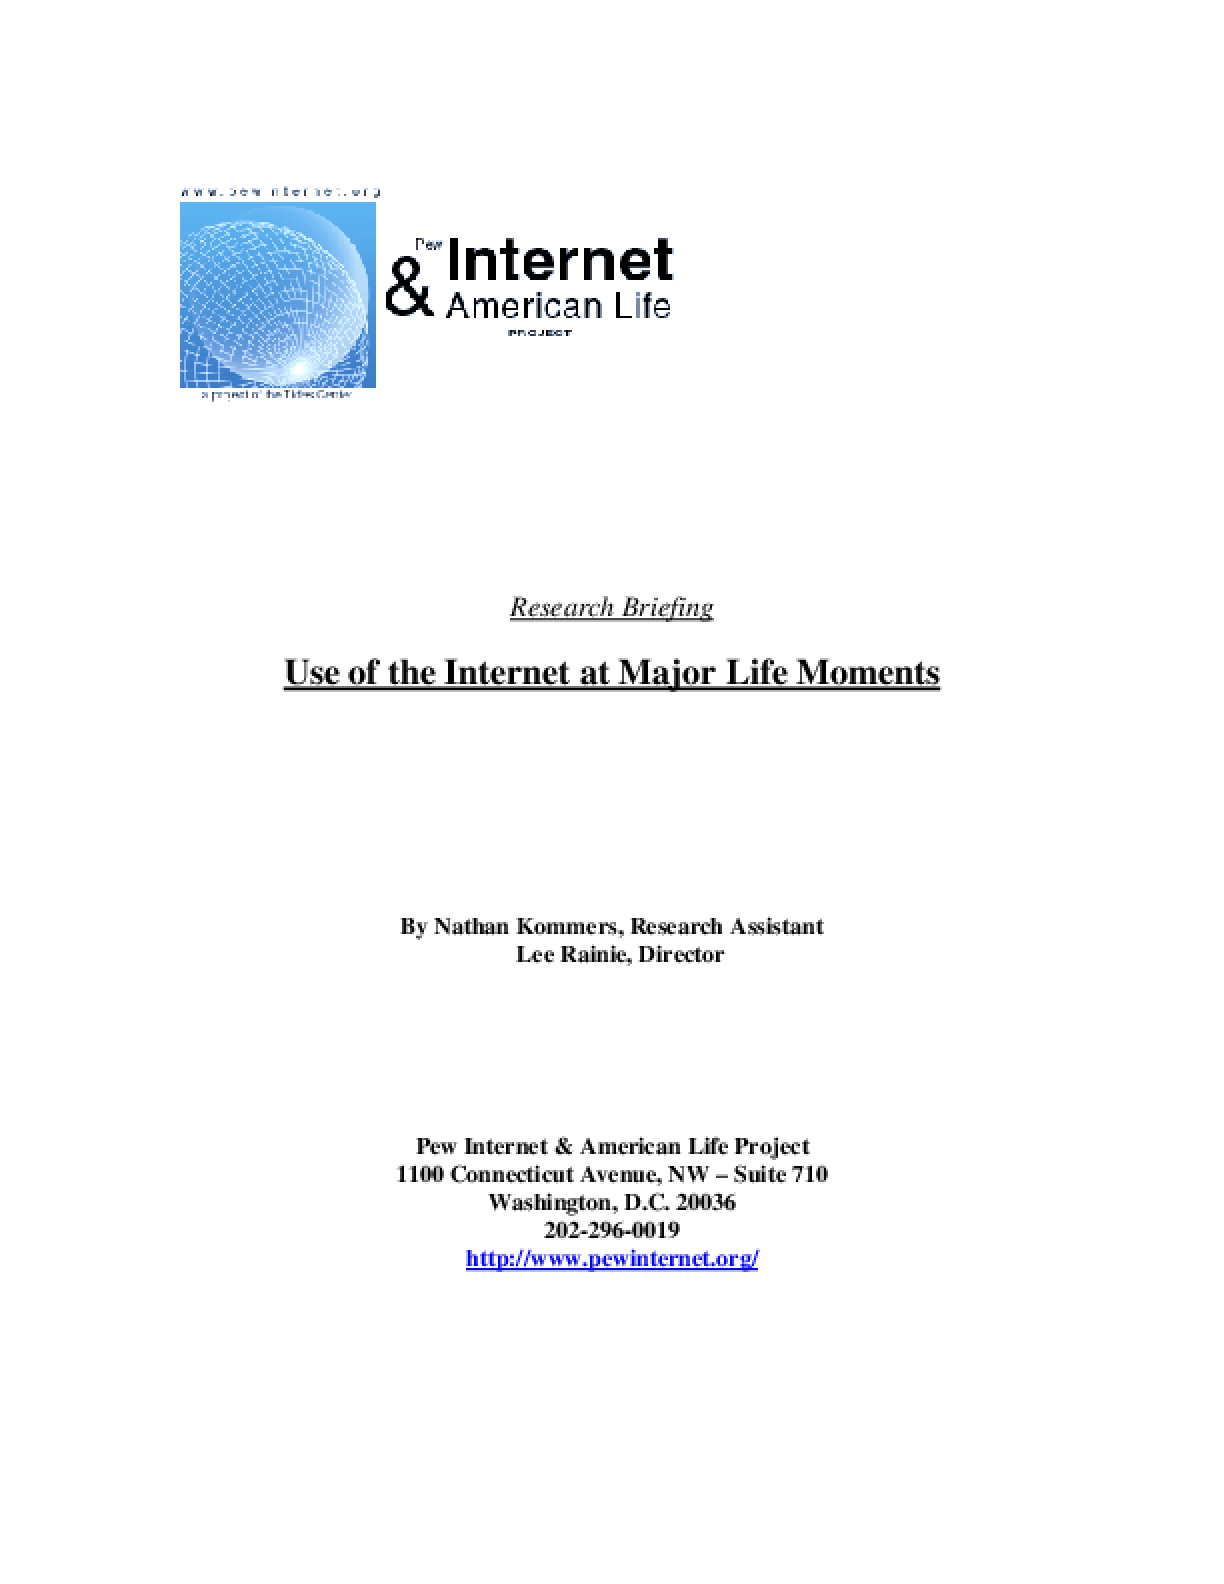 Use of the Internet at Major Life Moments